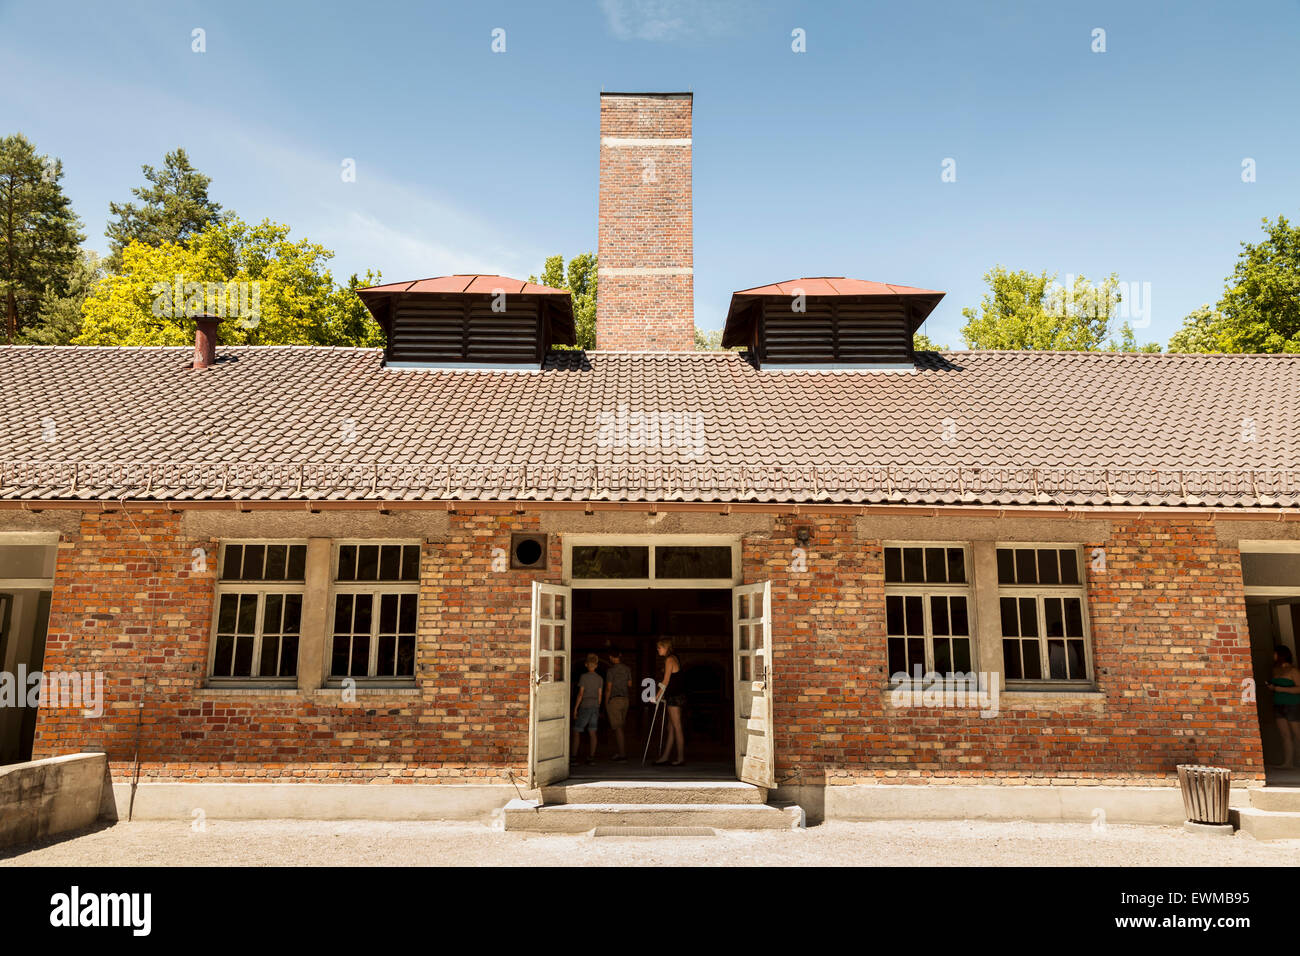 The crematorium also known as Barrack X at Dachau concentration camp. - Stock Image